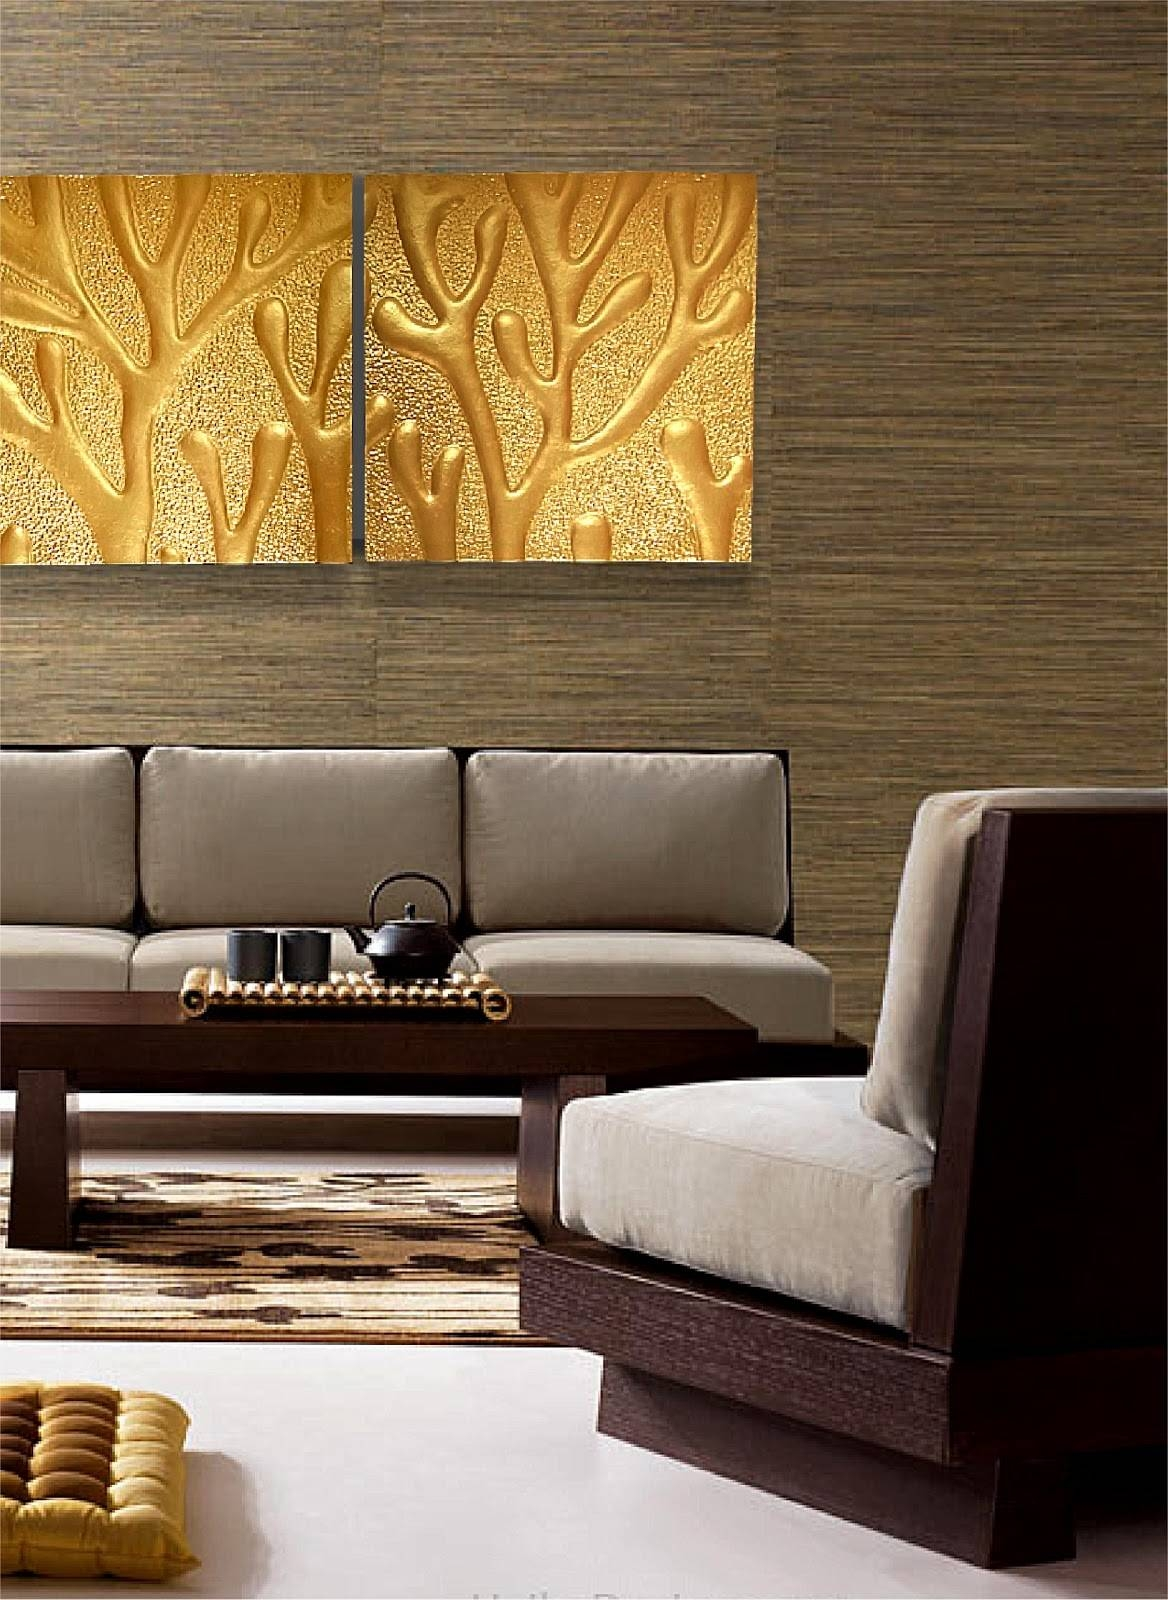 Decorative Wall Panels Singapore Hand Made Modern Canvas Oil Intended For Newest Japanese Wall Art Panels (View 8 of 25)